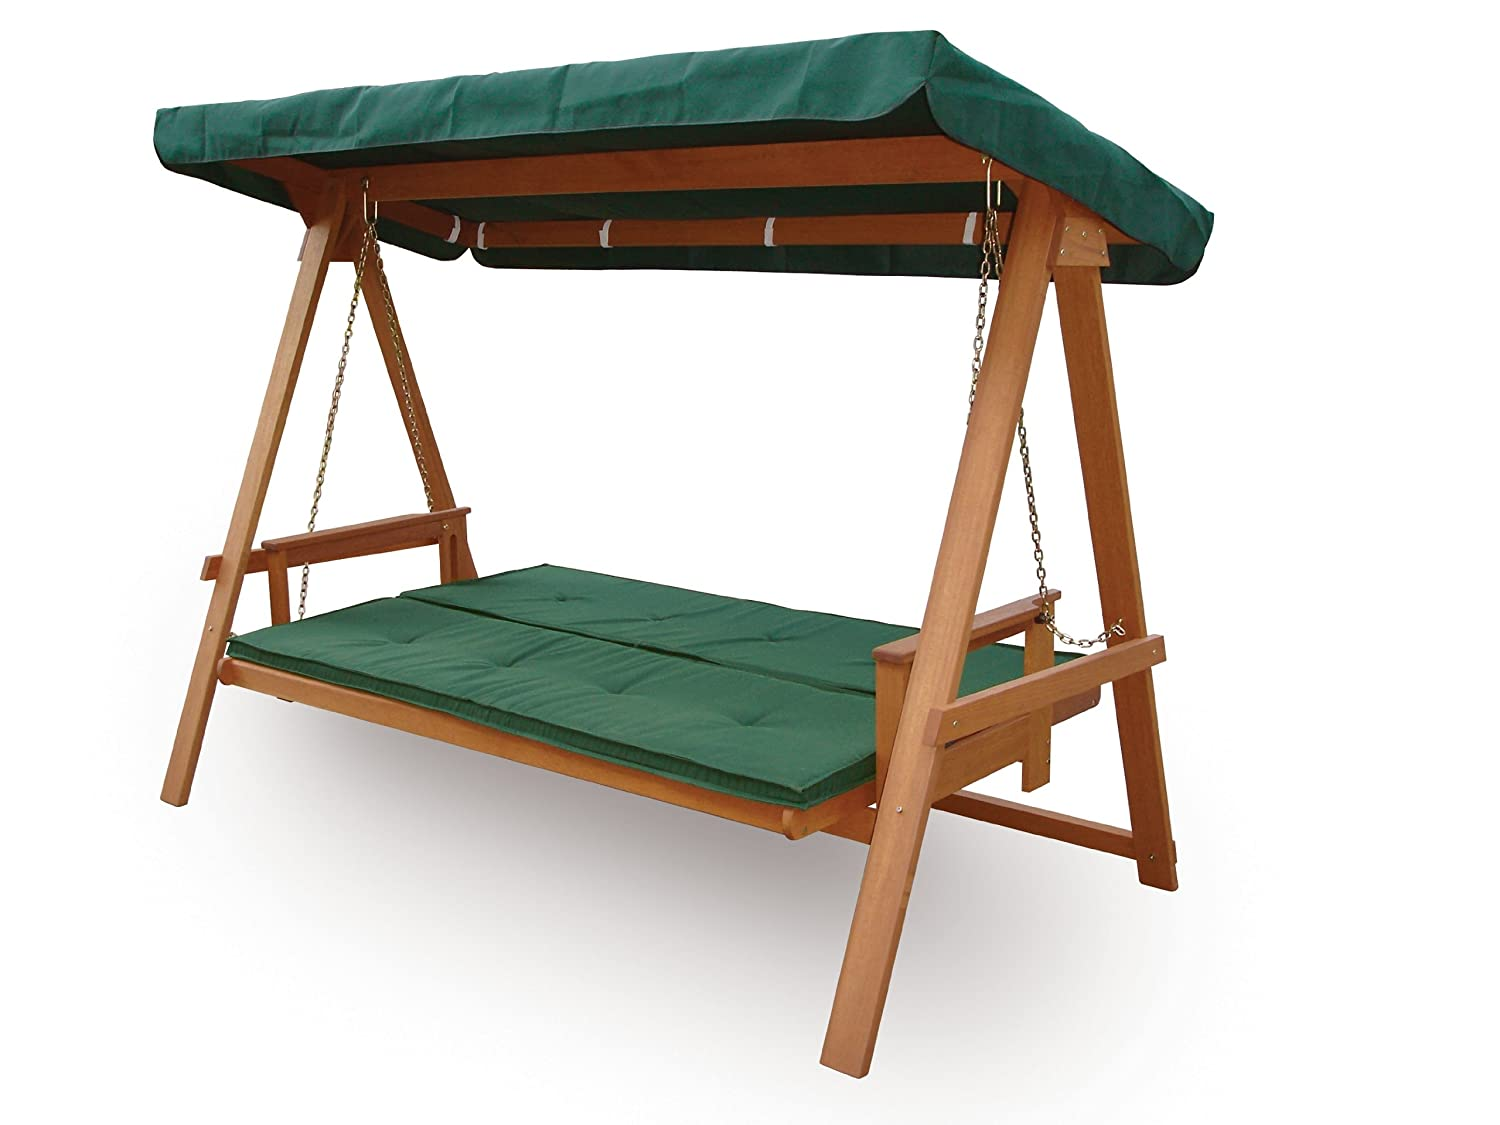 li lo leisure baharu swing bed  amazon co uk  garden  u0026 outdoors  rh   amazon co uk